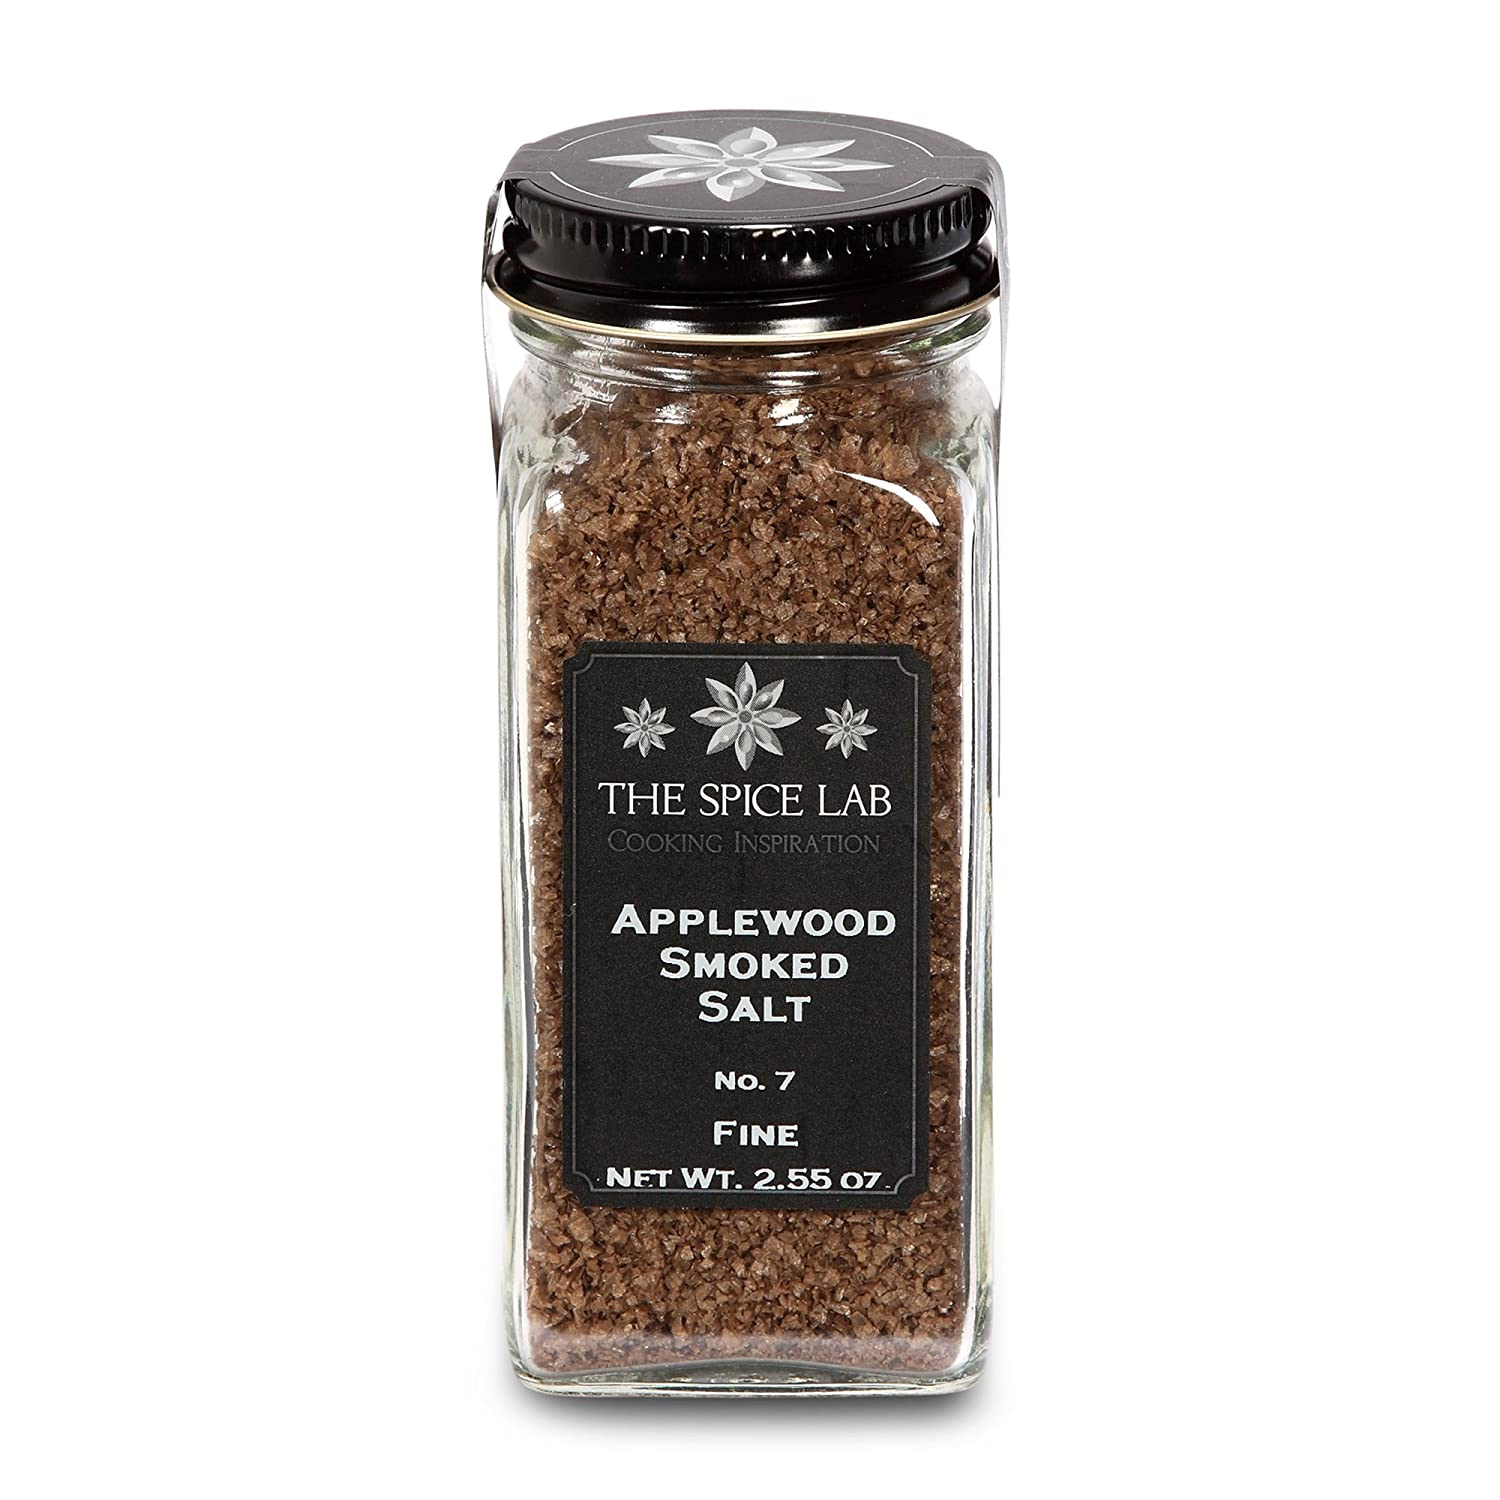 Amazon.com : The Spice Lab Apple Wood Smoked Sea Salt - Great on the BBQ - Apple wood Seasoning Blend - 4 Ounce : Flavored Salts : Grocery & Gourmet Food